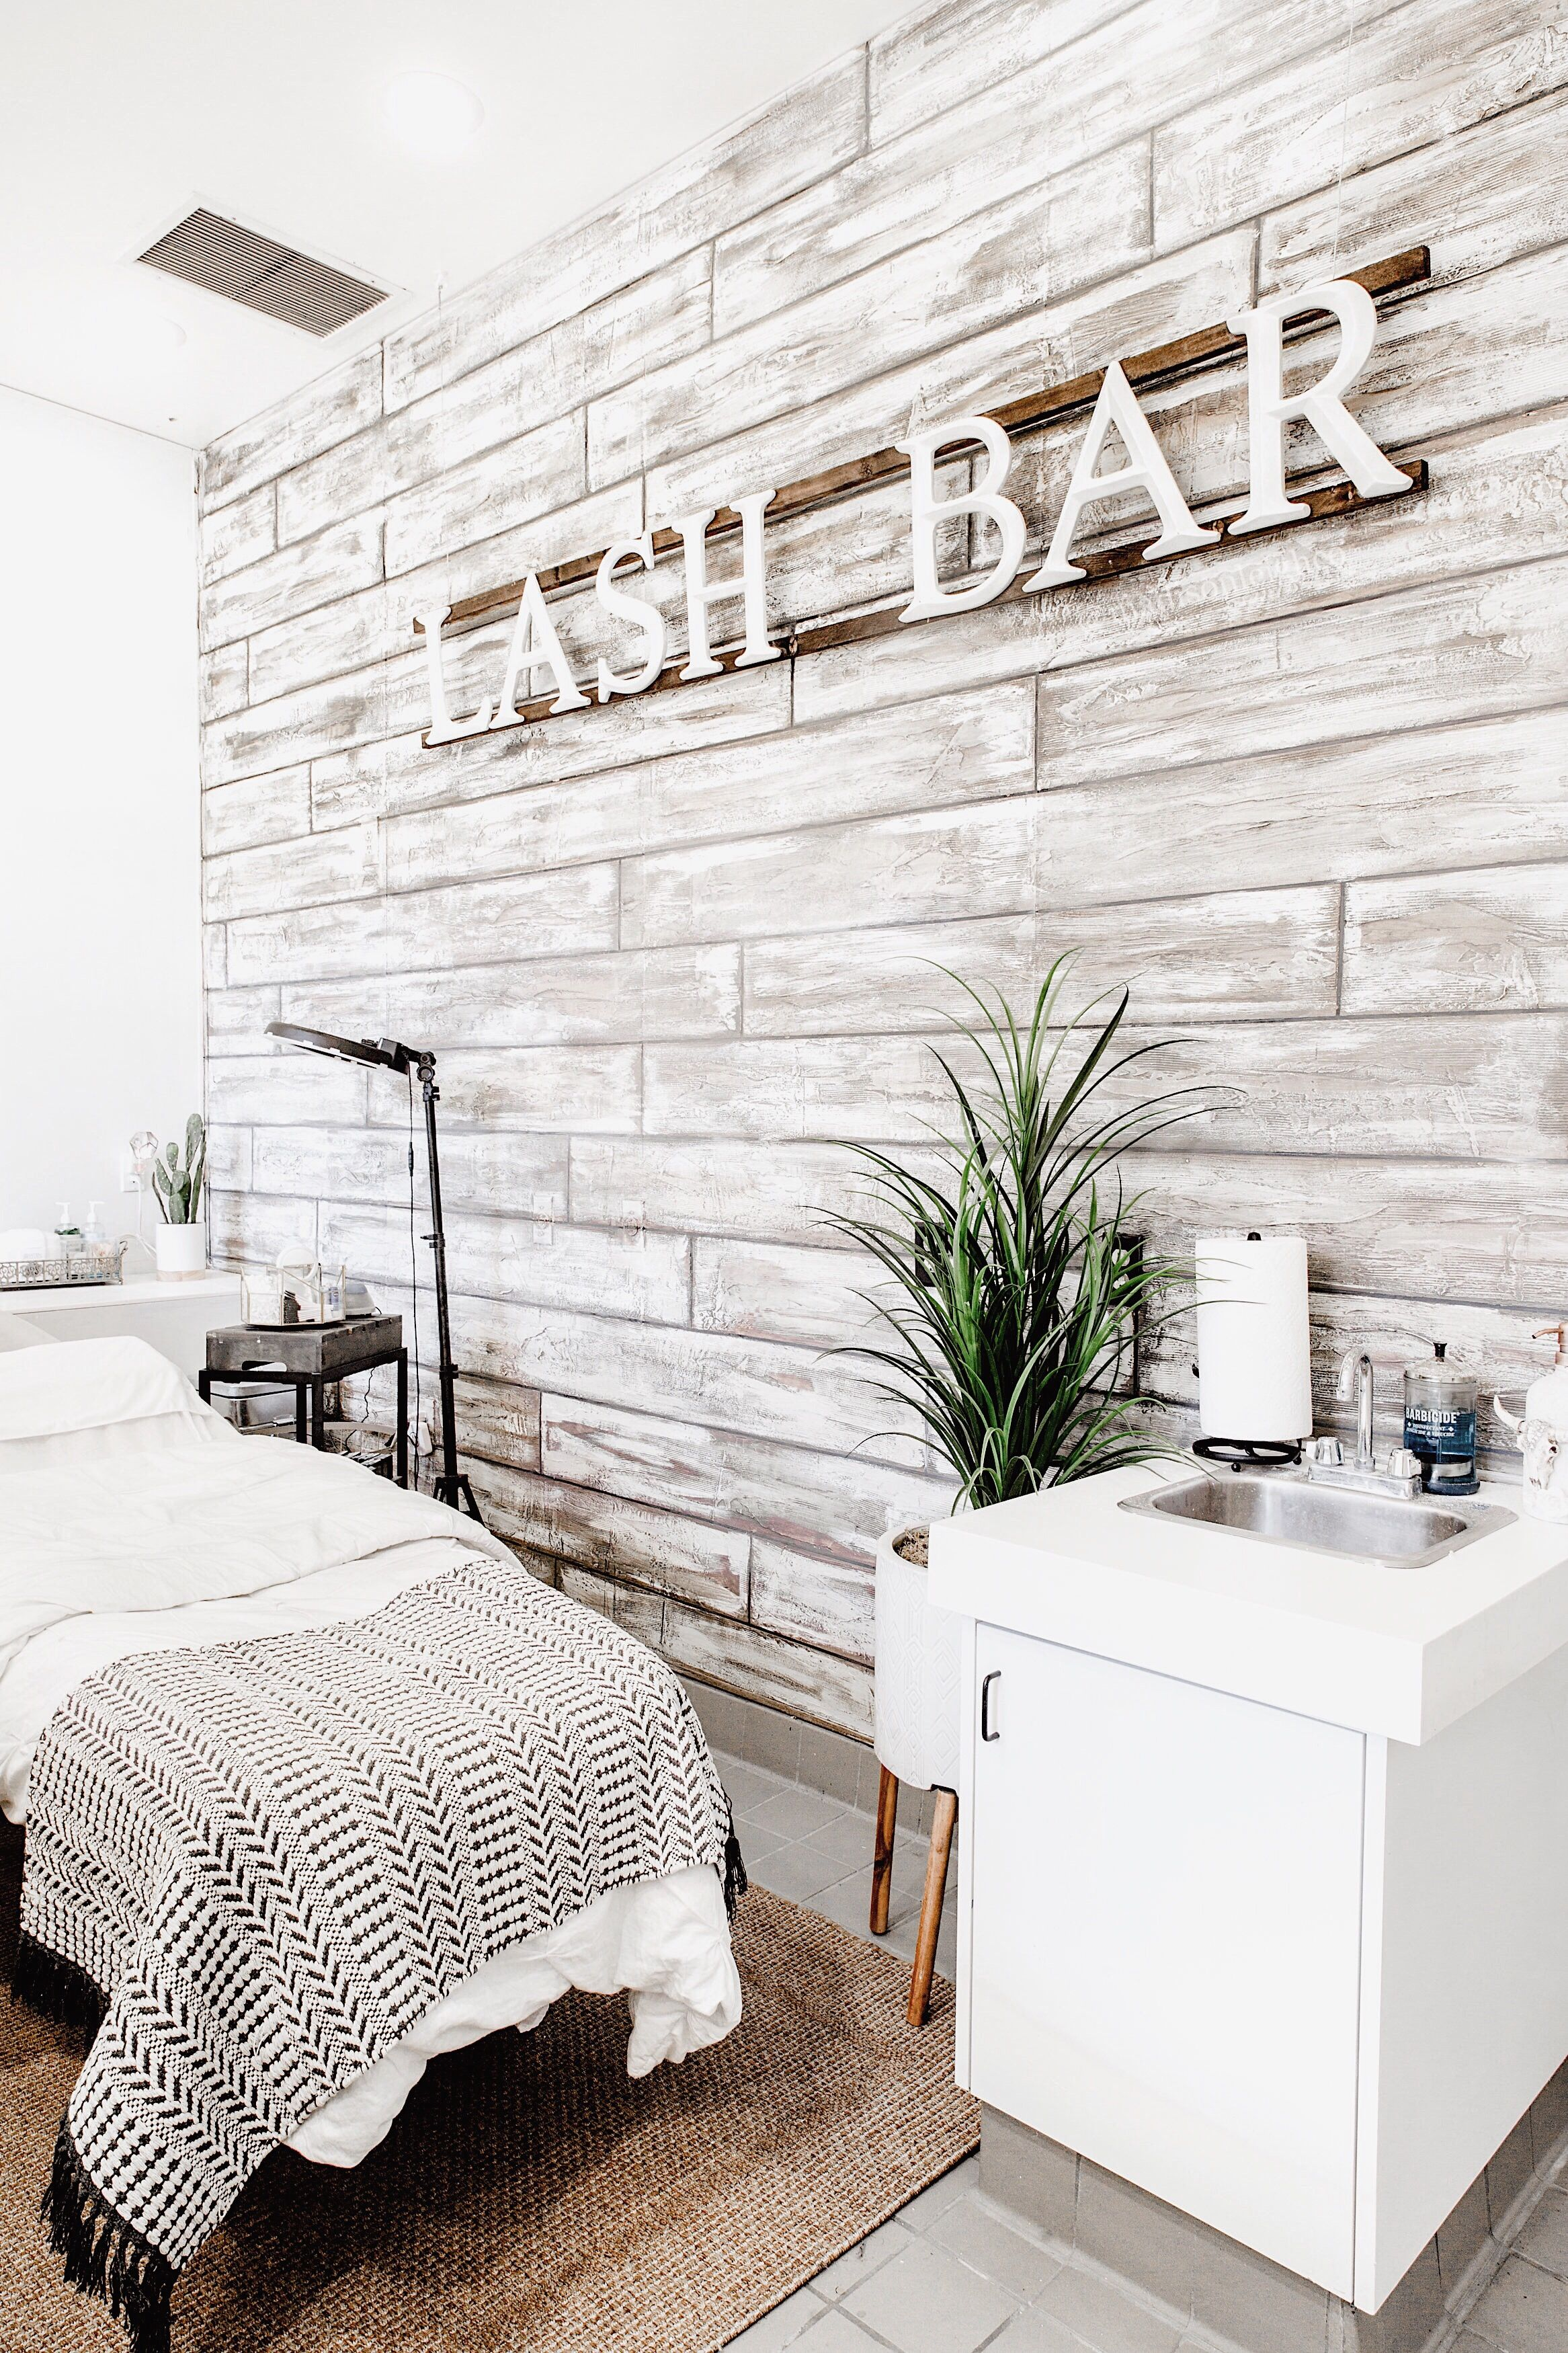 Main Lash Bed Bed For Our Master Lash Artist So Many Ideas For Beautiful Lash Room Decors But This Is Esthetician Room Decor Beauty Room Salon Esthetics Room